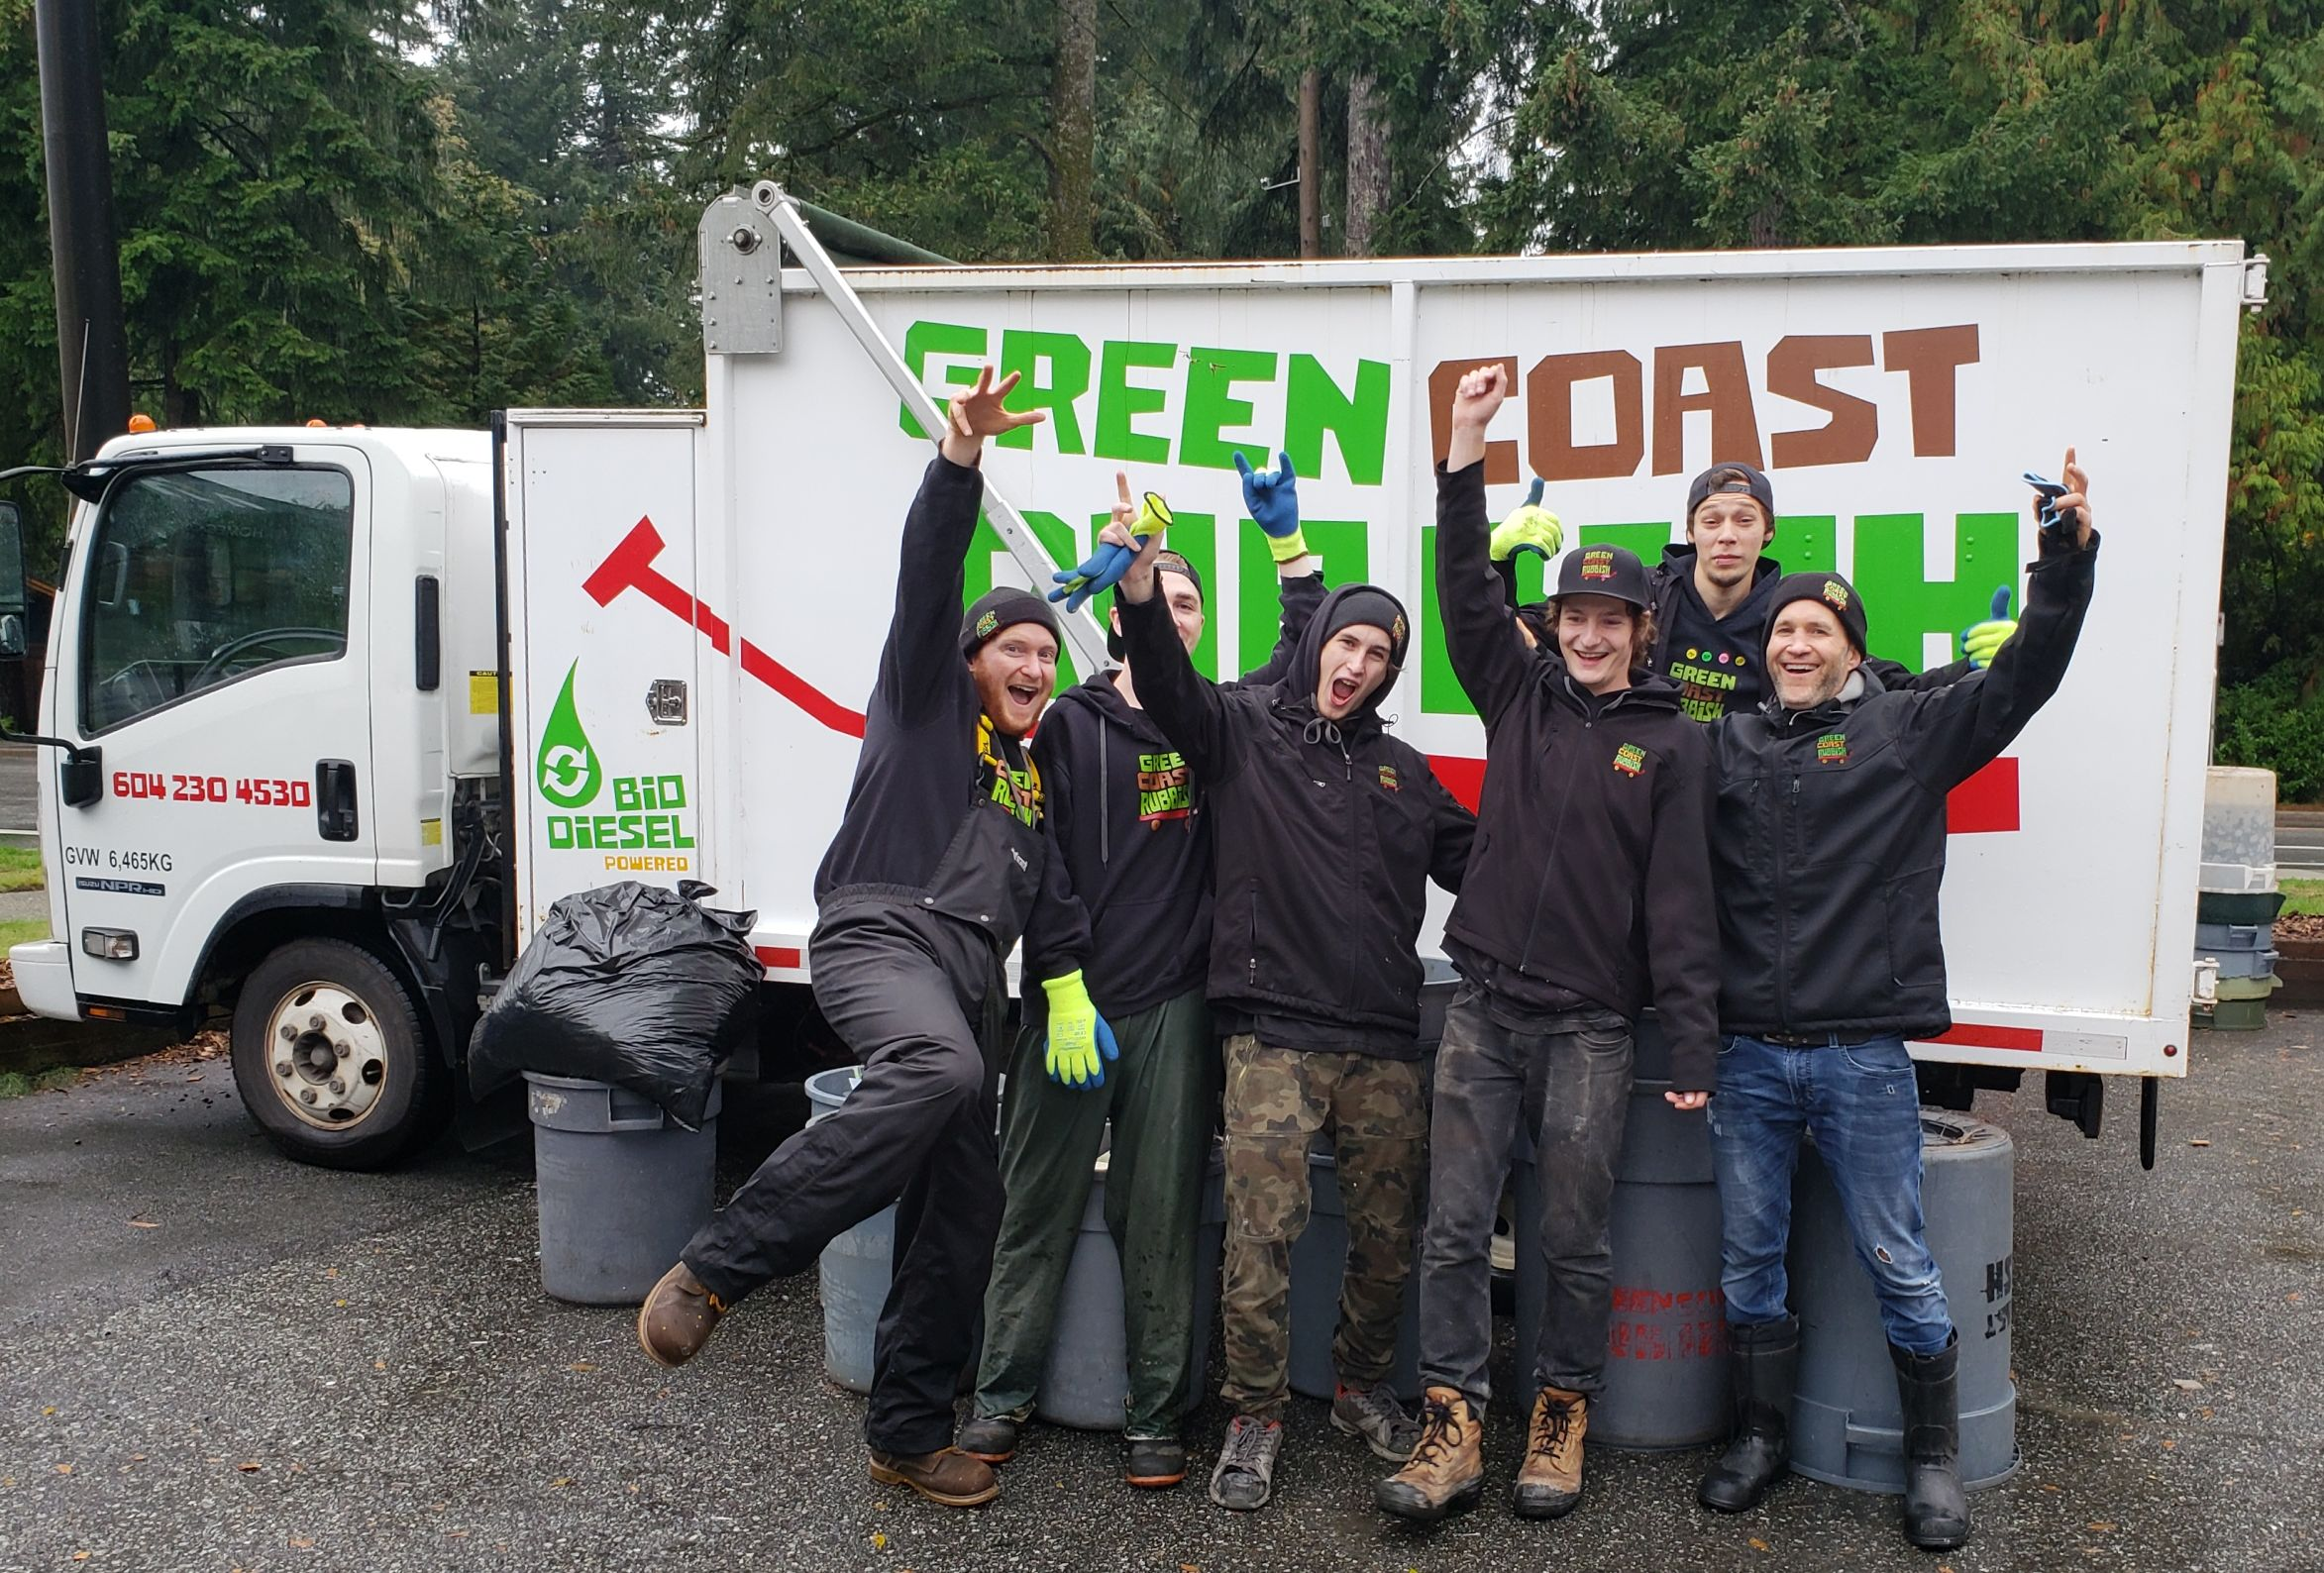 Green Coast Rubbish team